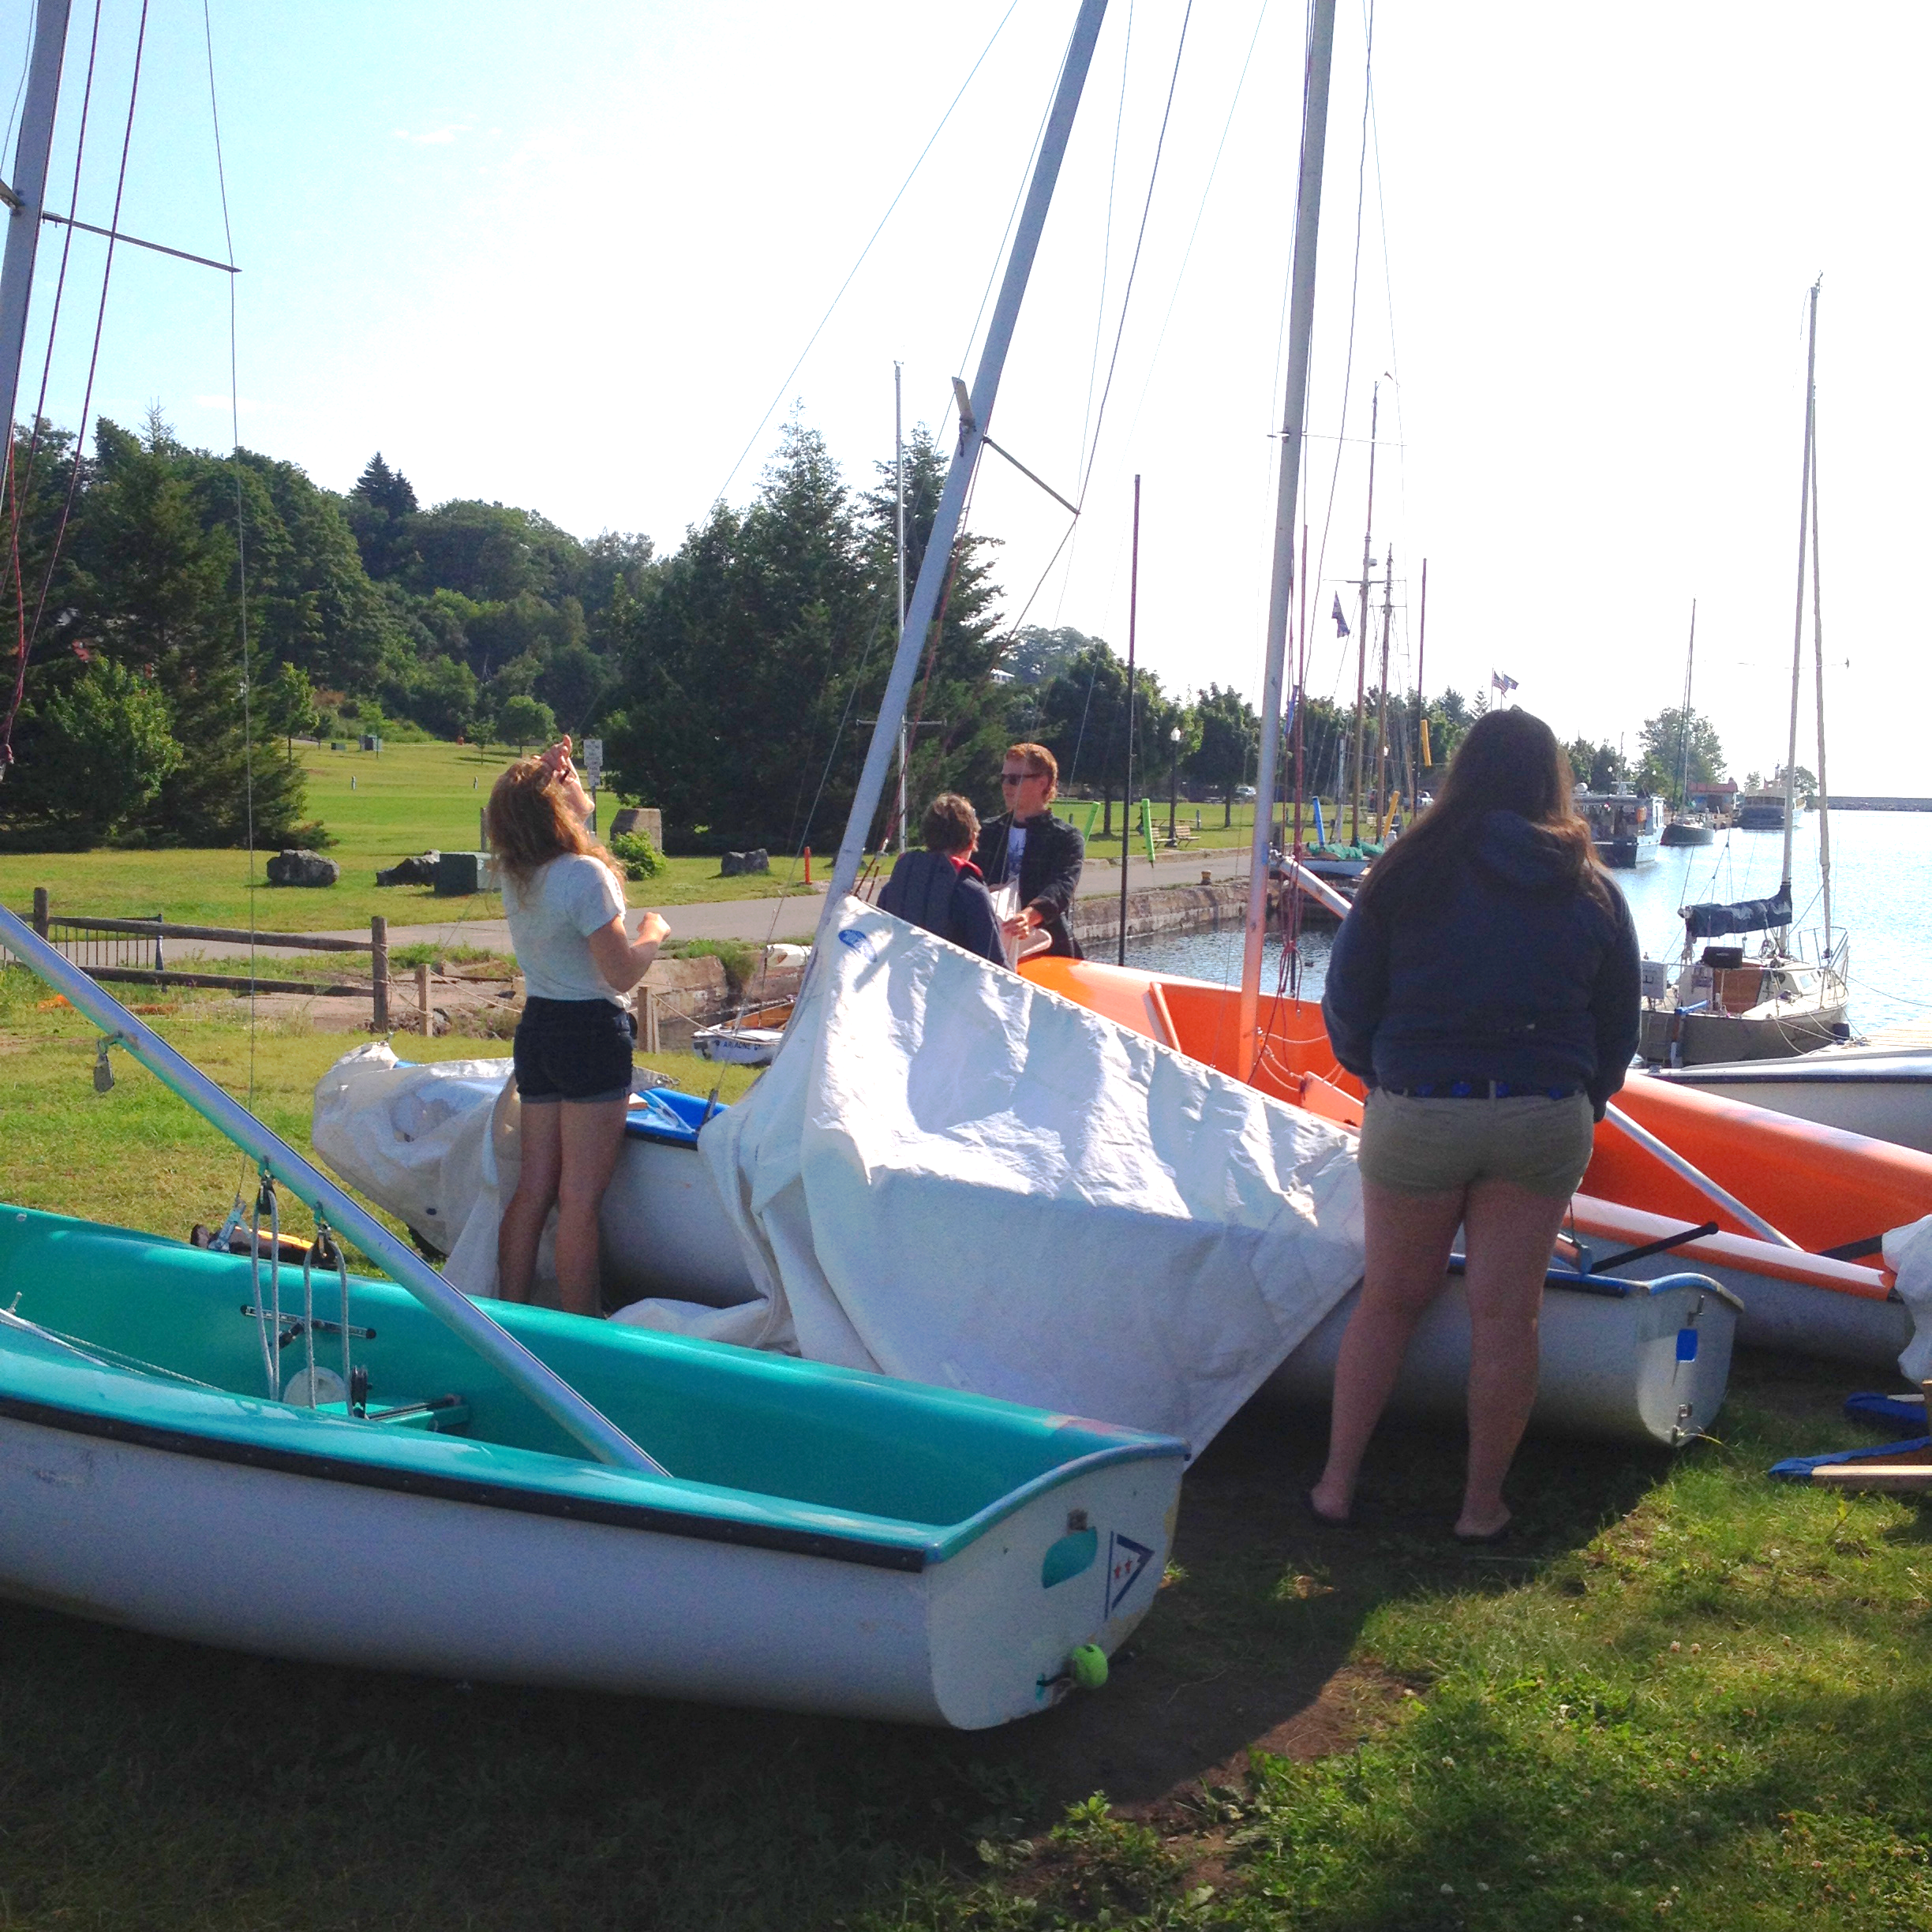 Students set up FJ's in preparation to head out sailing!